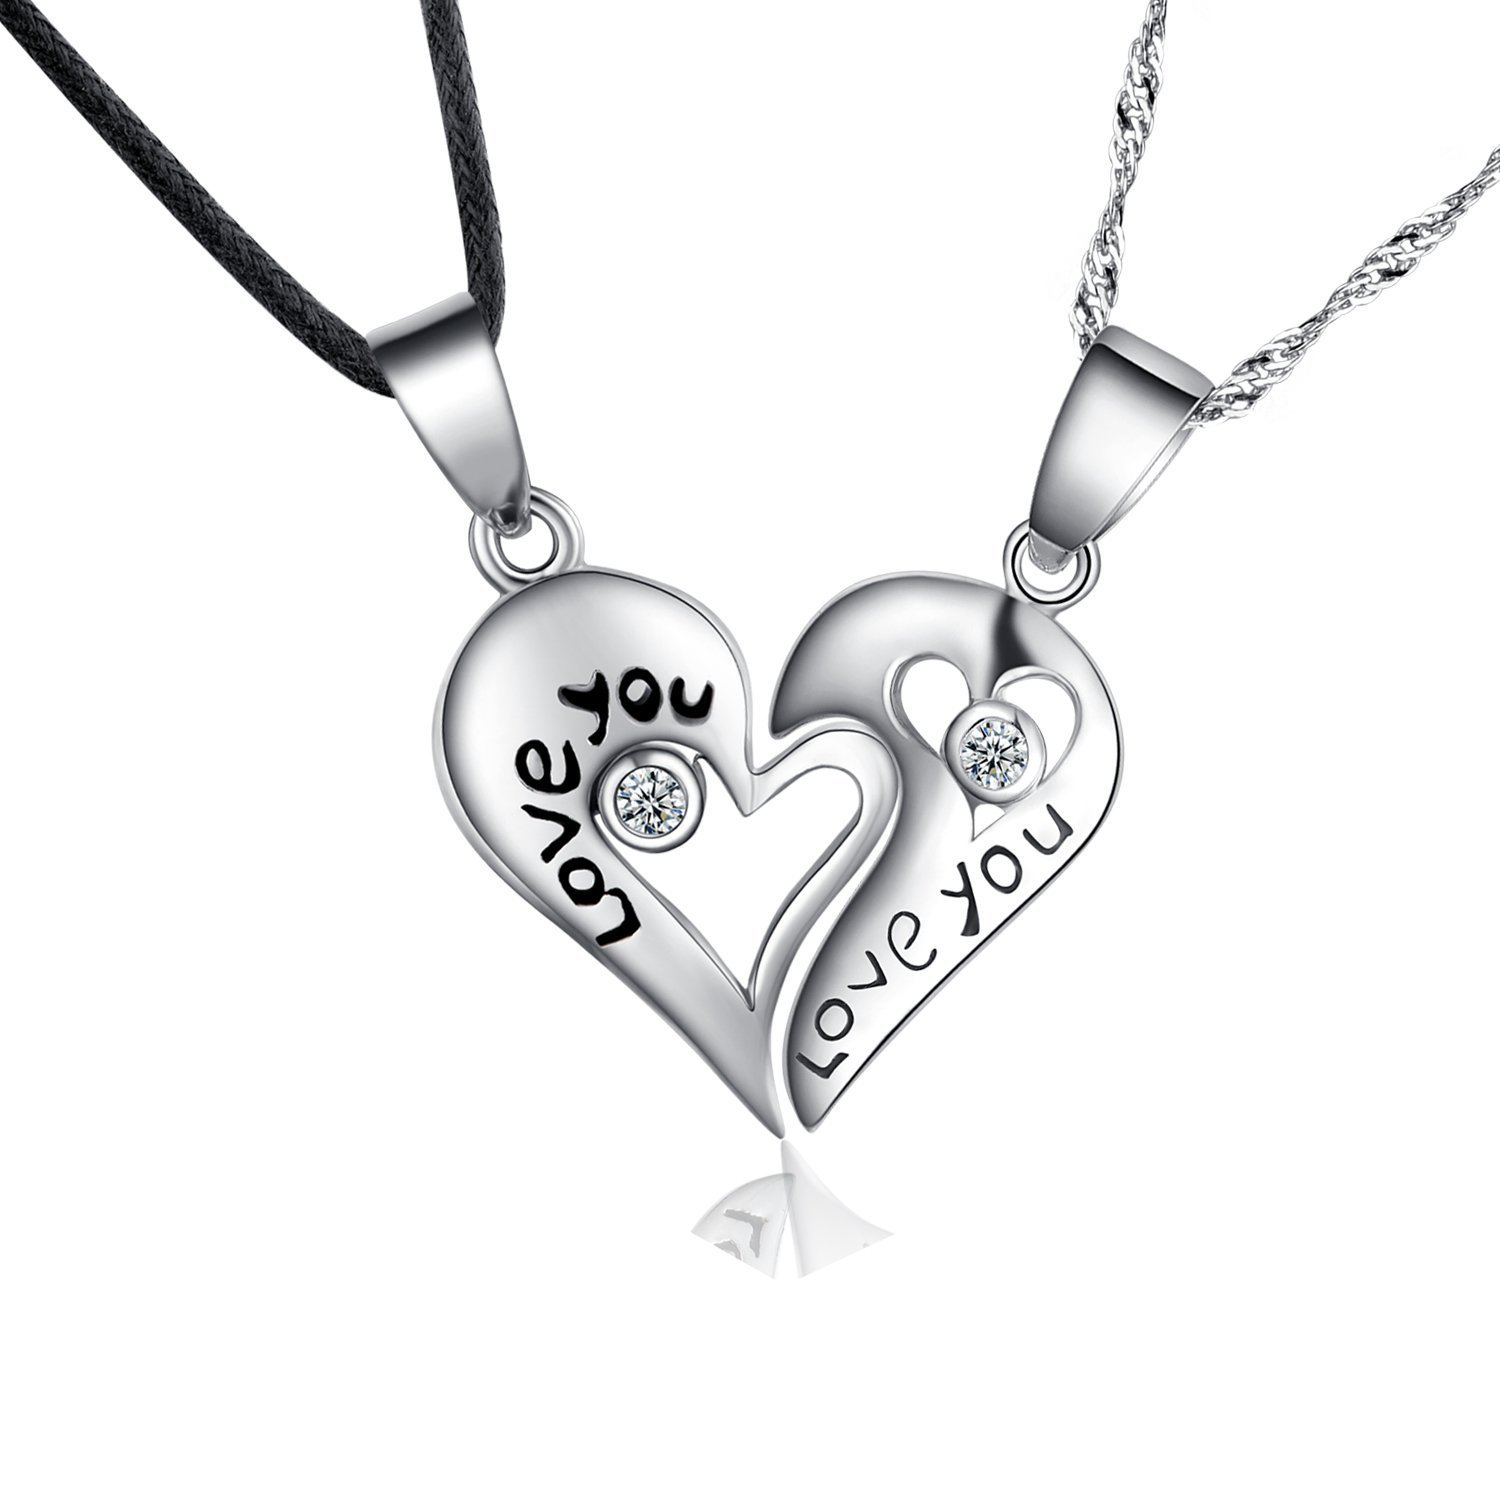 steel polished stainless heart dangle toni bijoux product jewelry jewellery necklace